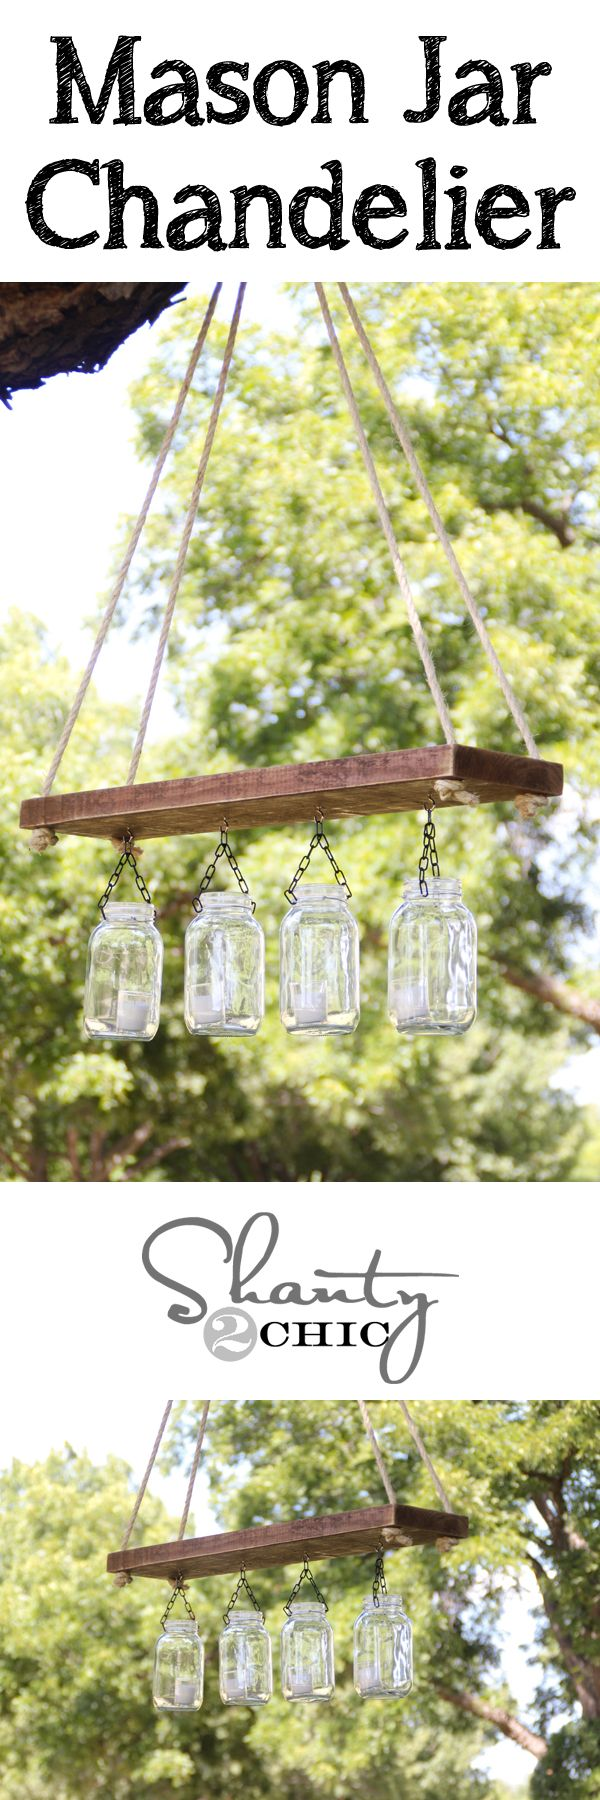 DIY Mason Jar Chandelier!  Super cute! Calling my sweet son-in-law to make me one of these in exchange for one of his fave meals